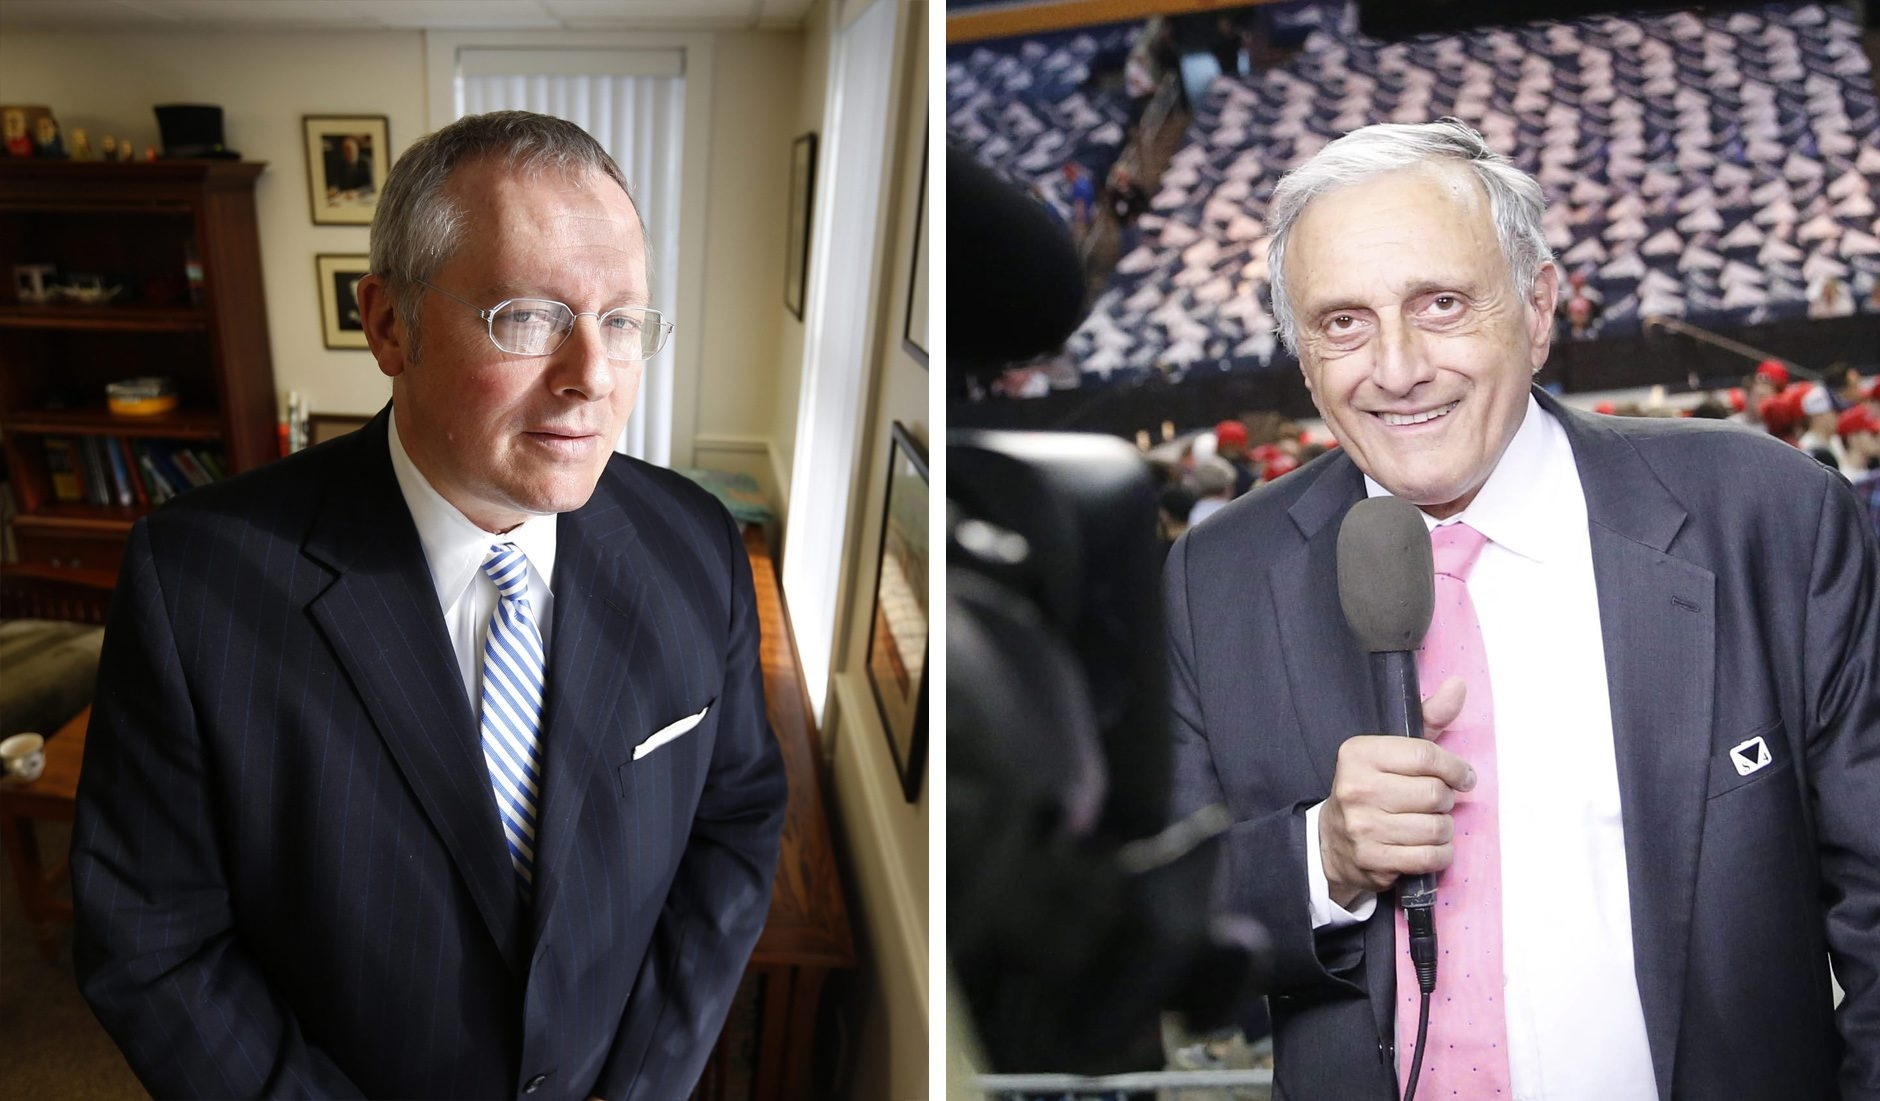 Michael Caputo, left, managed the 2010 gubernatorial campaign of Carl Paladino, right. (News file photos)